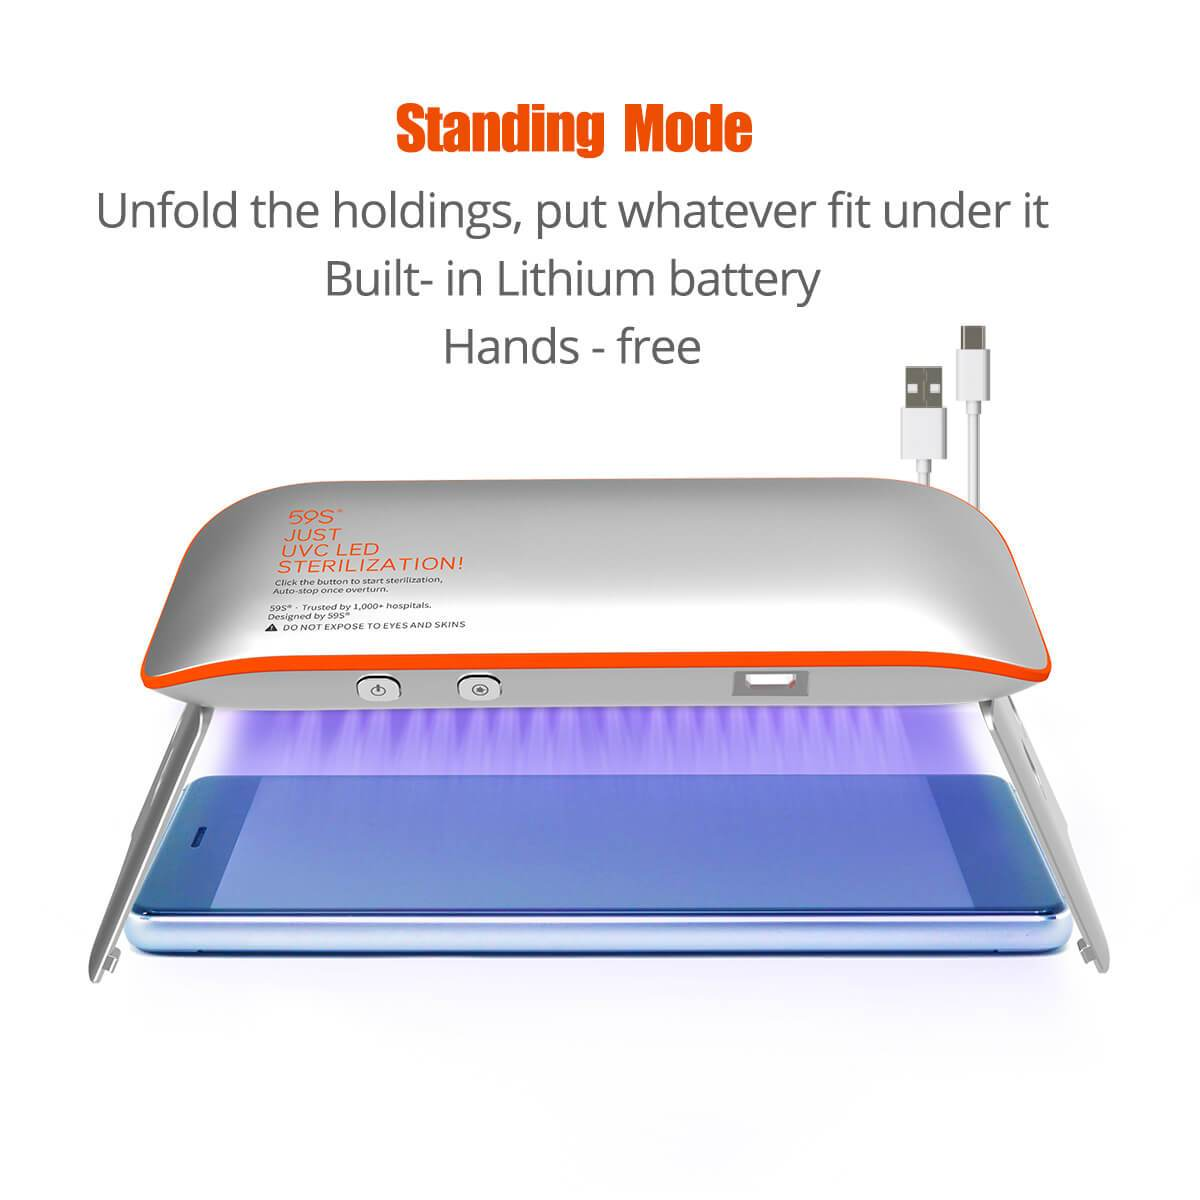 59S UV LED Portable Sterilizer X1 (Silver With Orange) standing mode